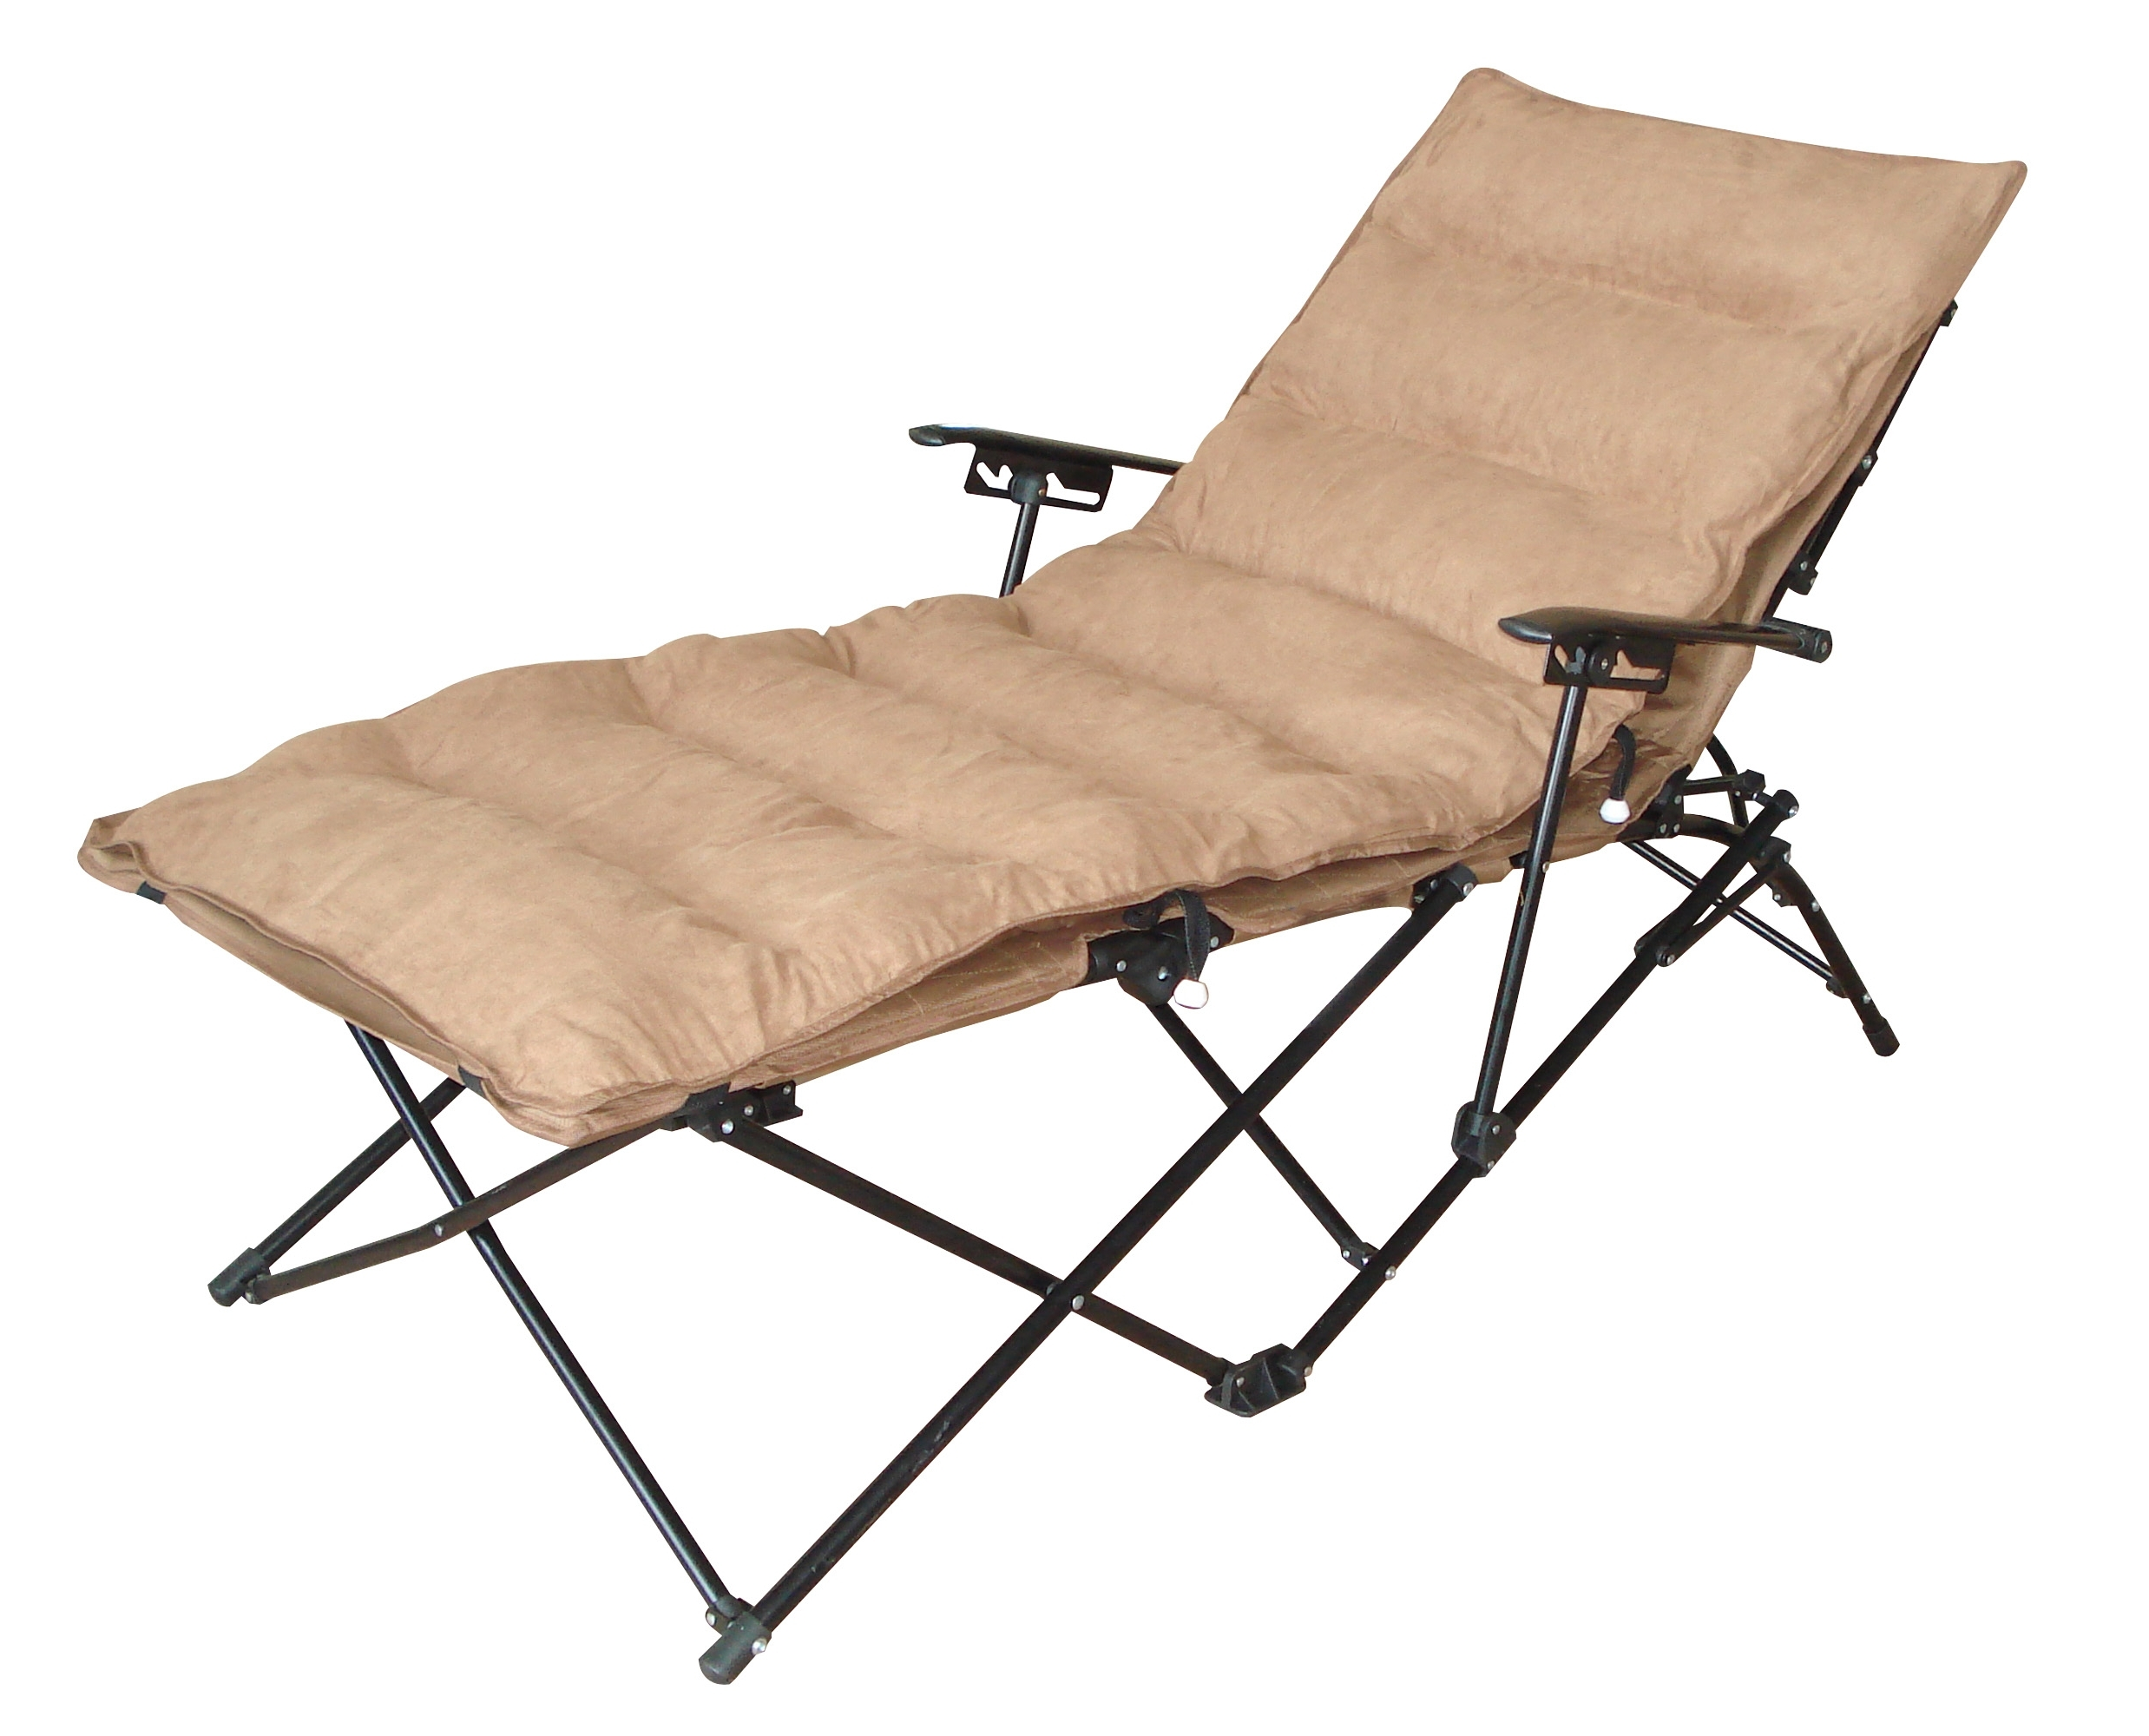 Fashionable Lightweight Chaise Lounge Chairs Pertaining To Outdoor : Folding Chaise Lounge Chair Jelly Lounge Chair Zero (View 6 of 15)